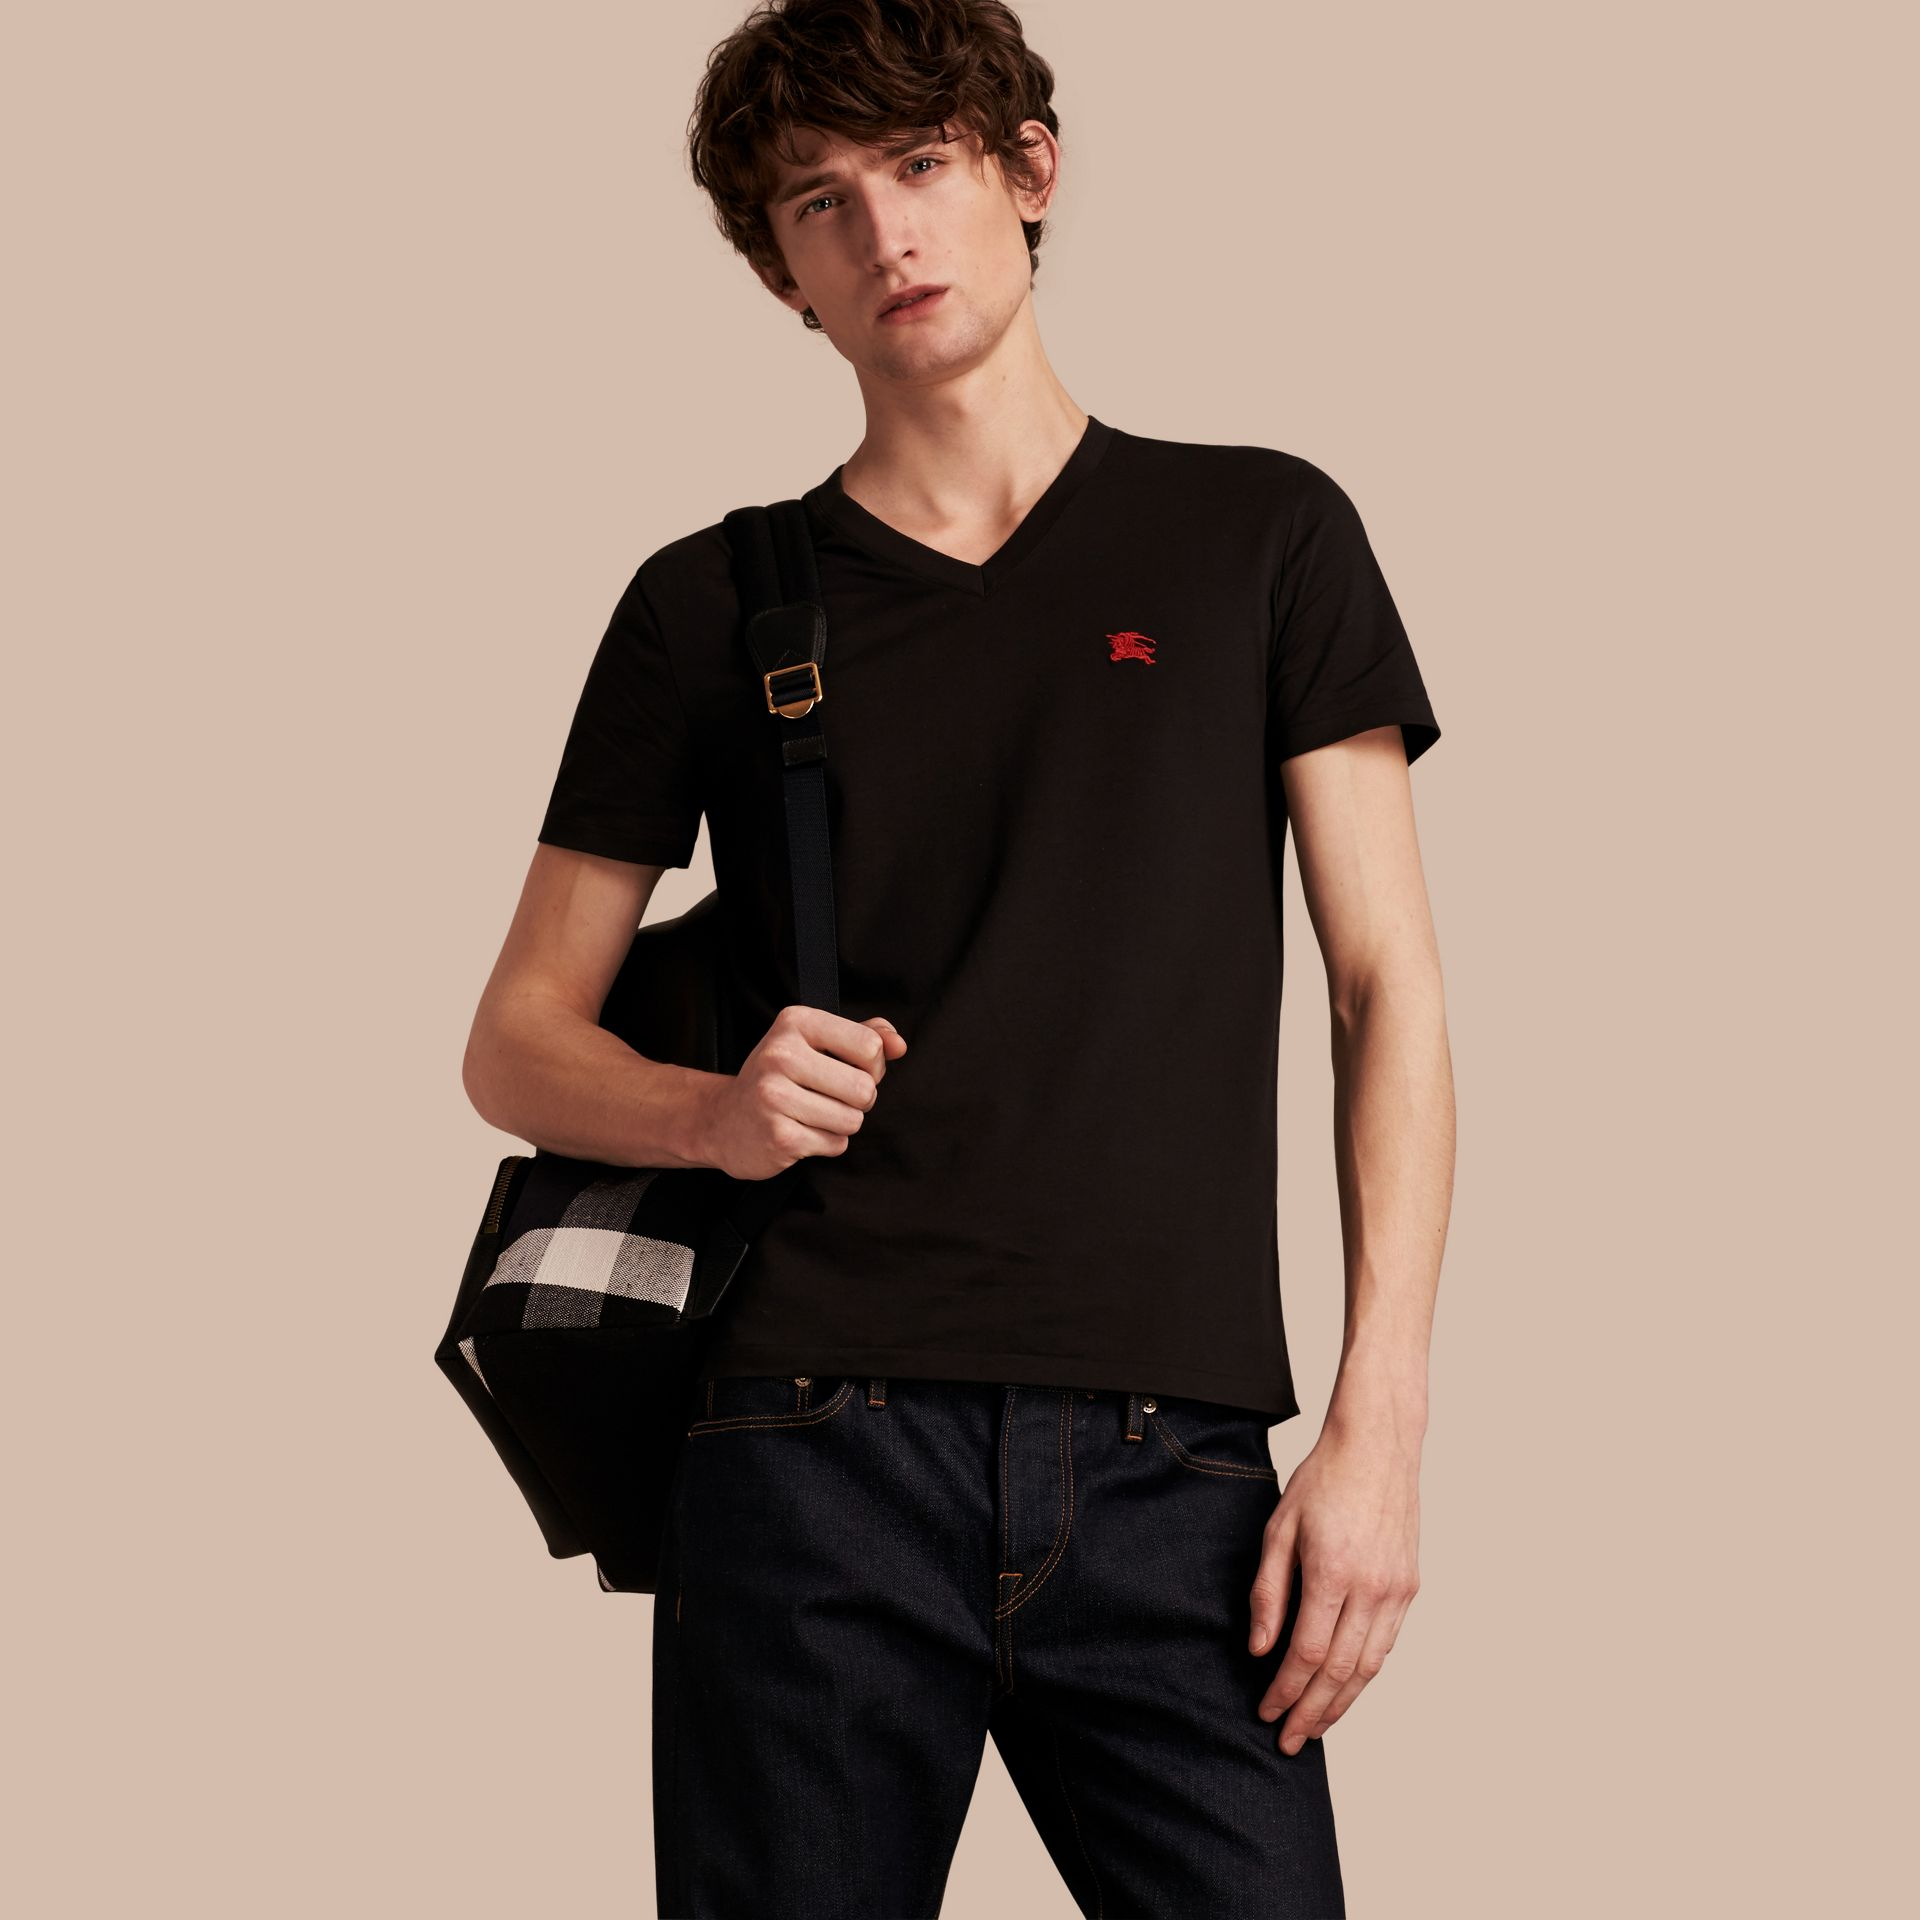 Cotton V-neck T-shirt in Black - Men | Burberry - gallery image 1